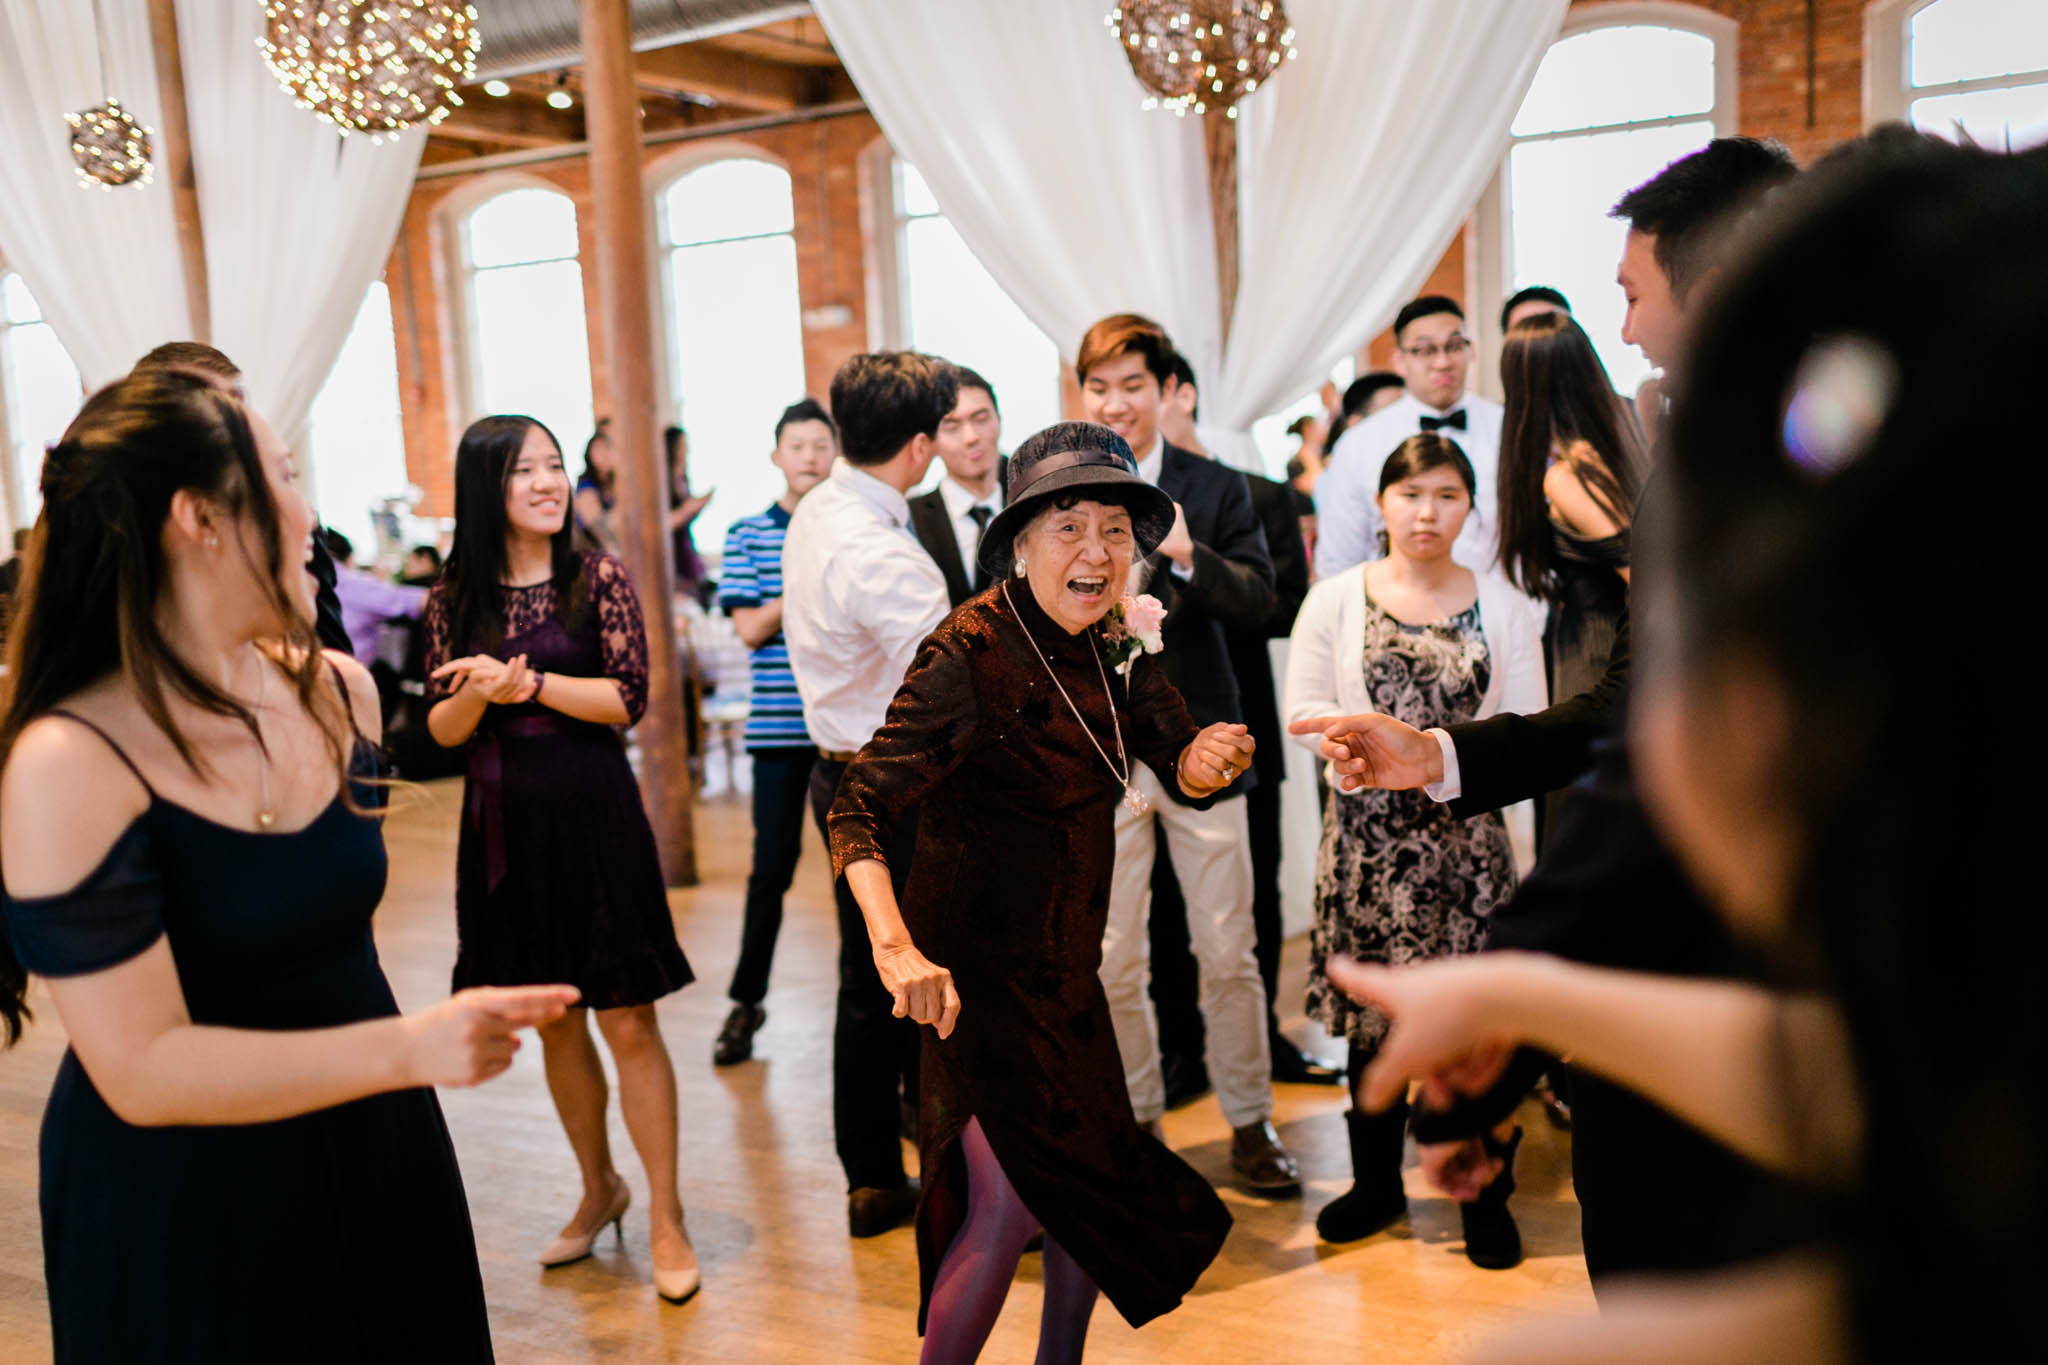 Grandmother dancing during wedding reception | Durham Wedding Photographer | The Cotton Room | By G. Lin Photography